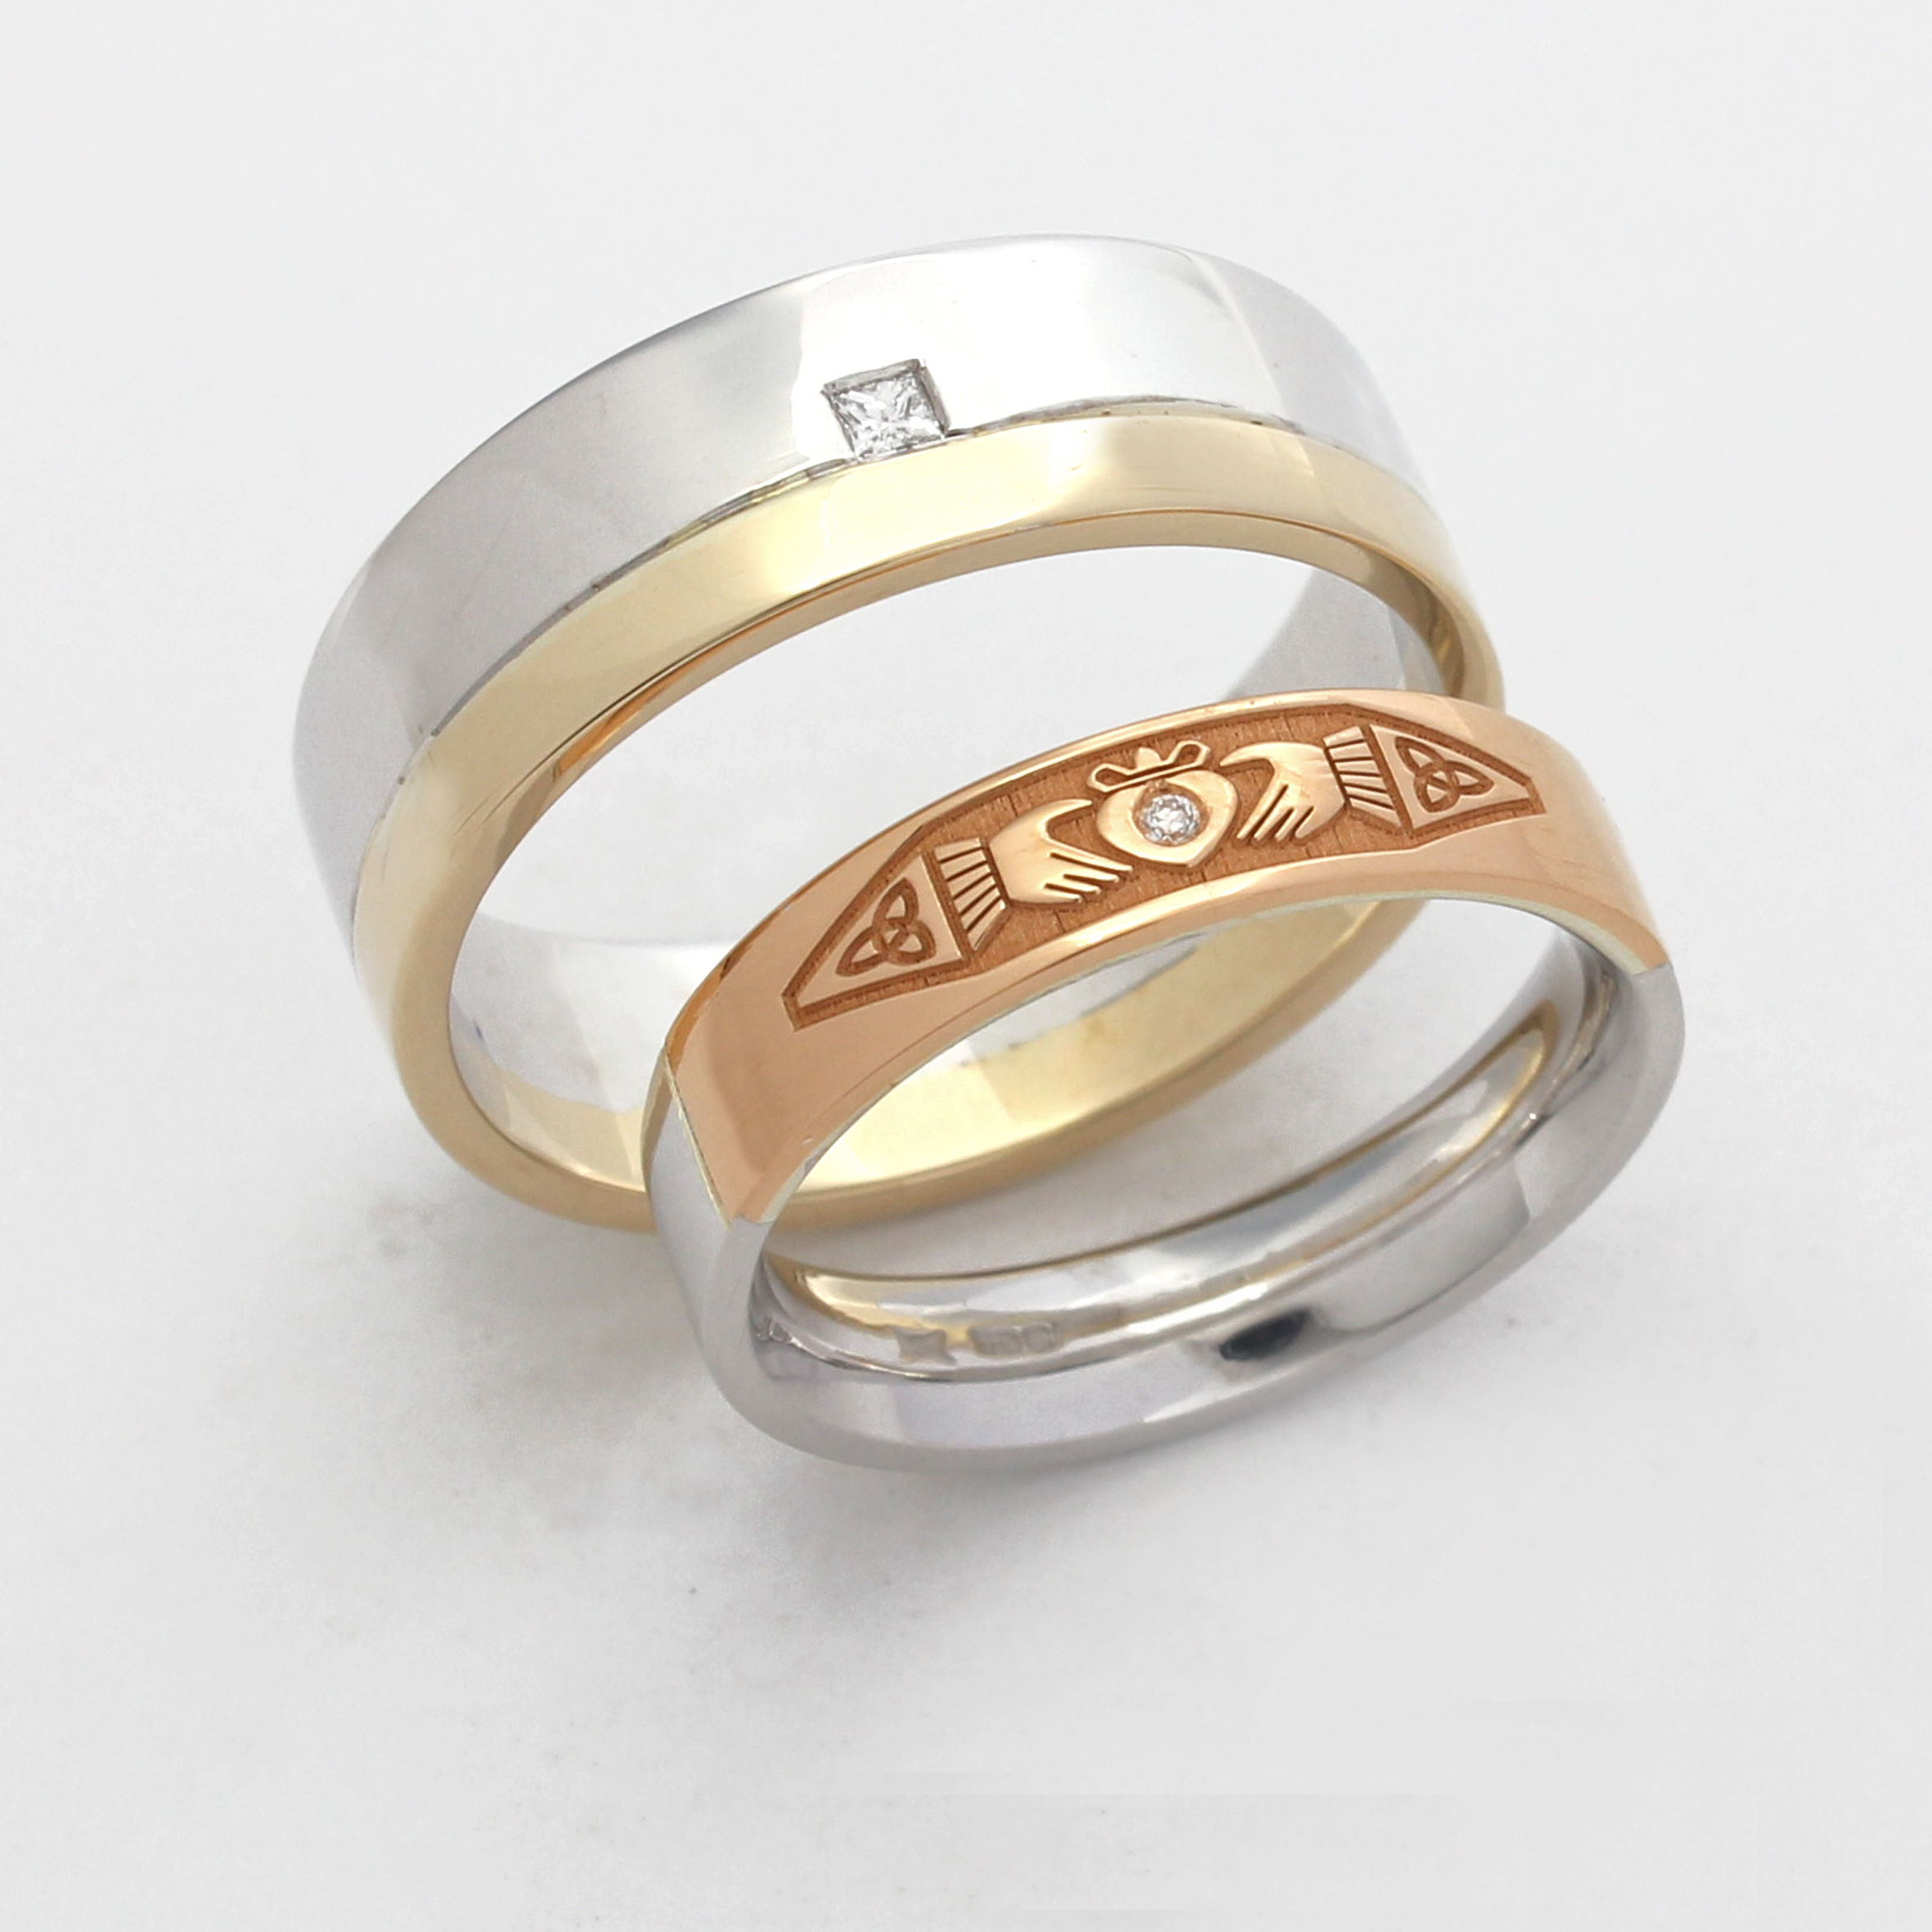 Remodelled jewellery incorporated into wedding rings